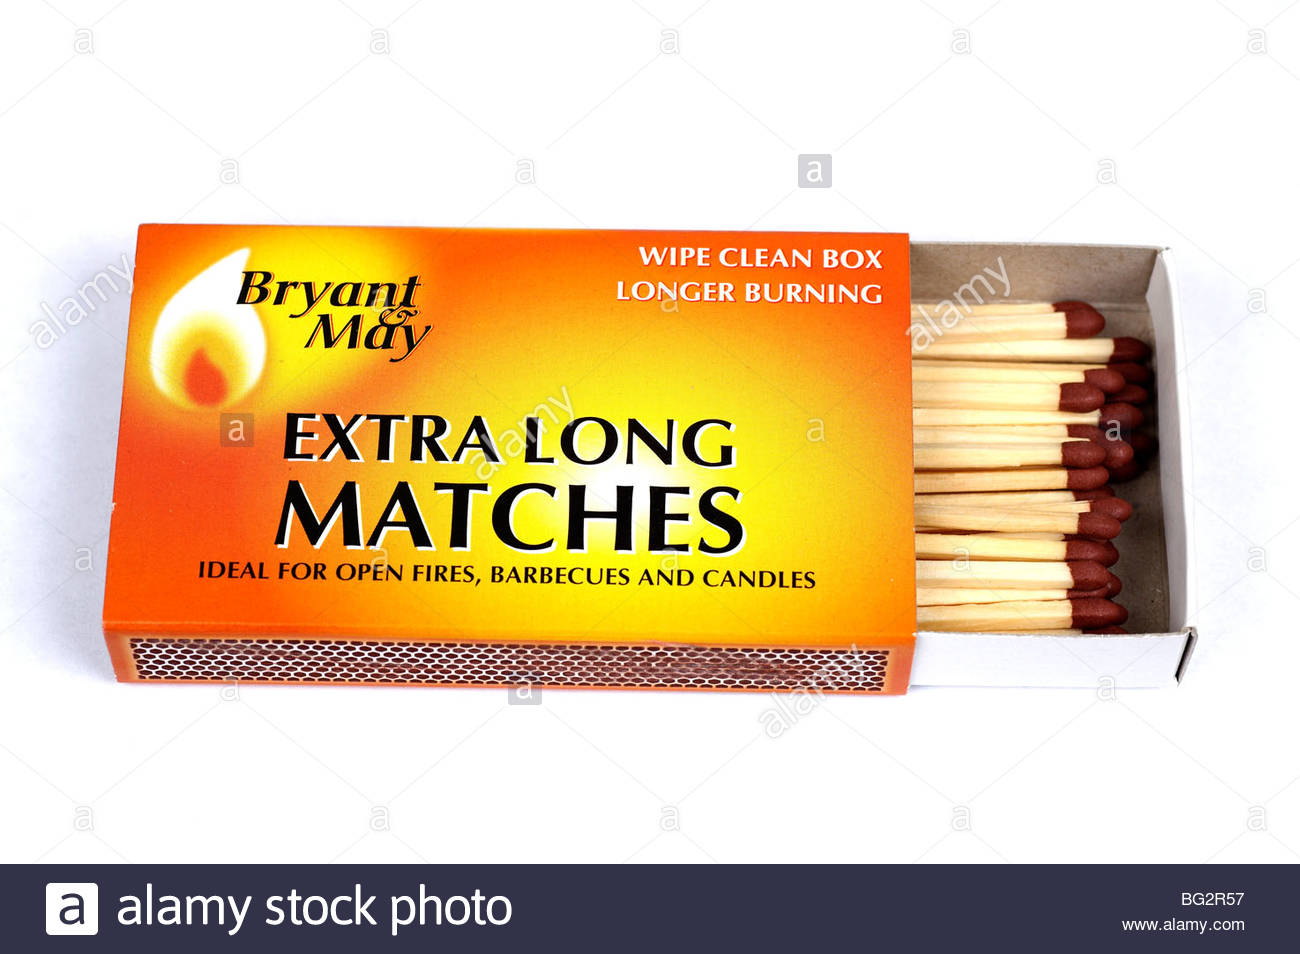 Box of extra long matches - Stock Image